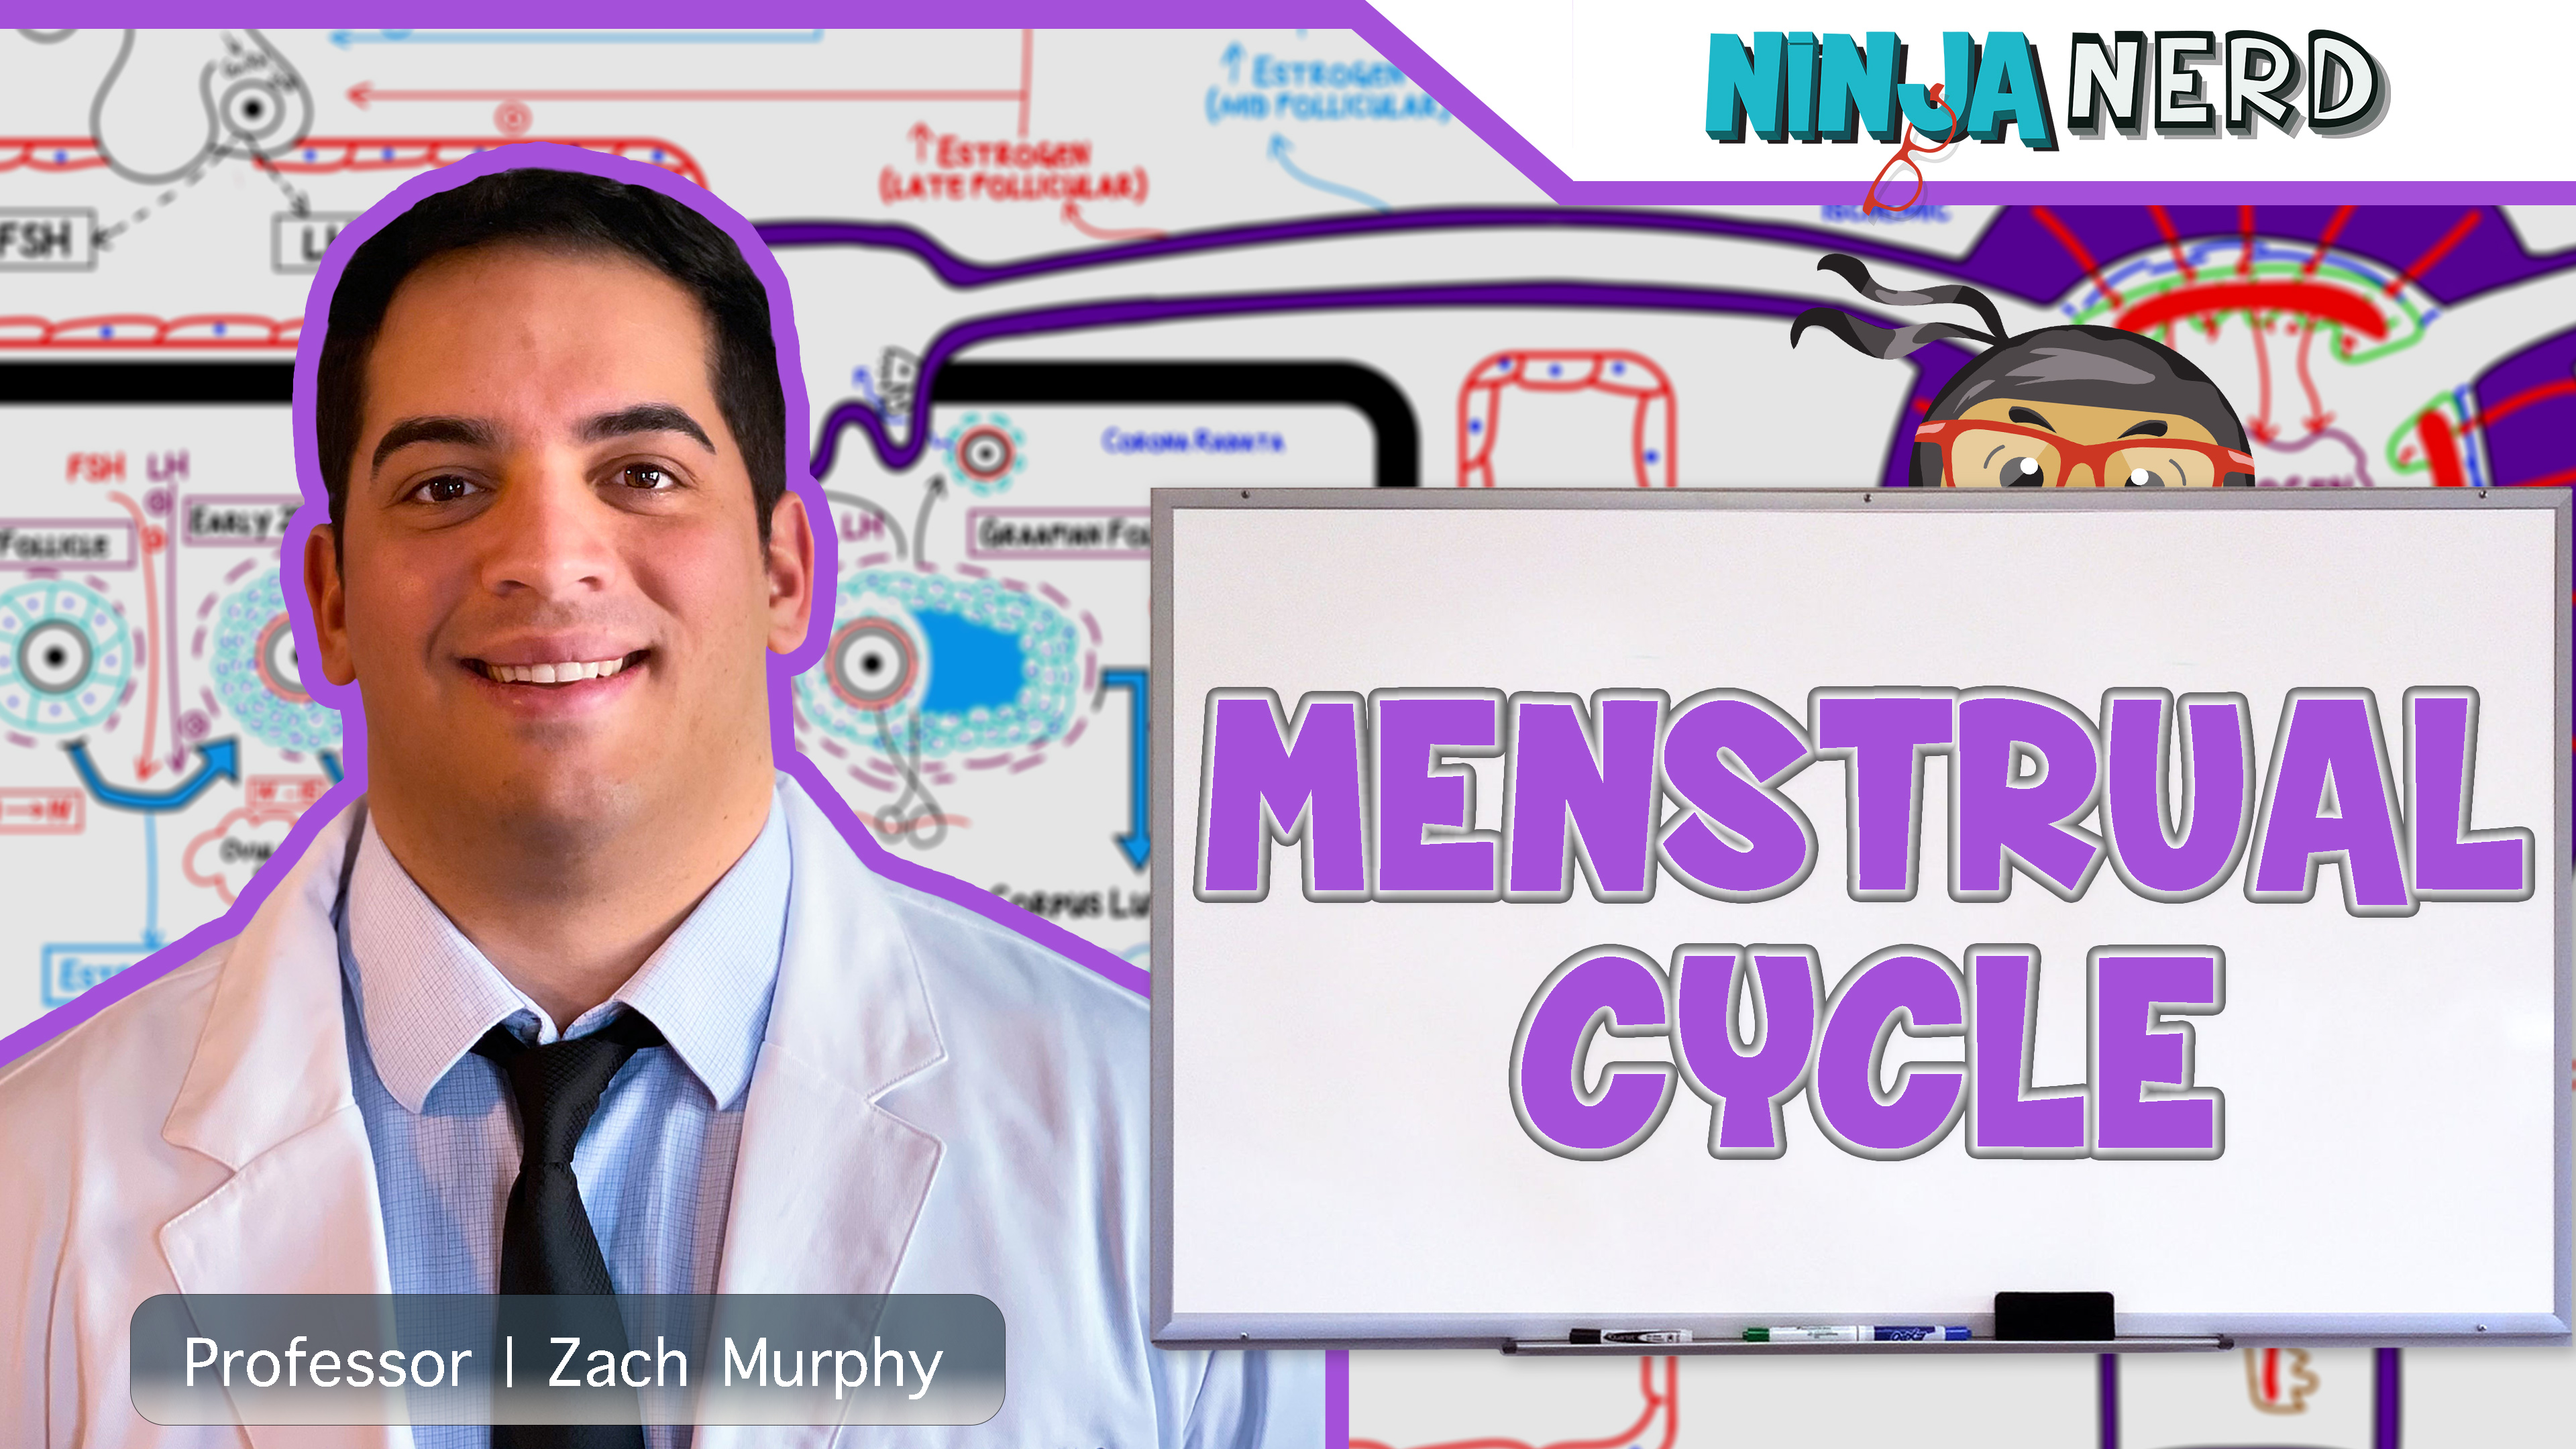 Female Reproductive Cycle | Menstrual Cycle